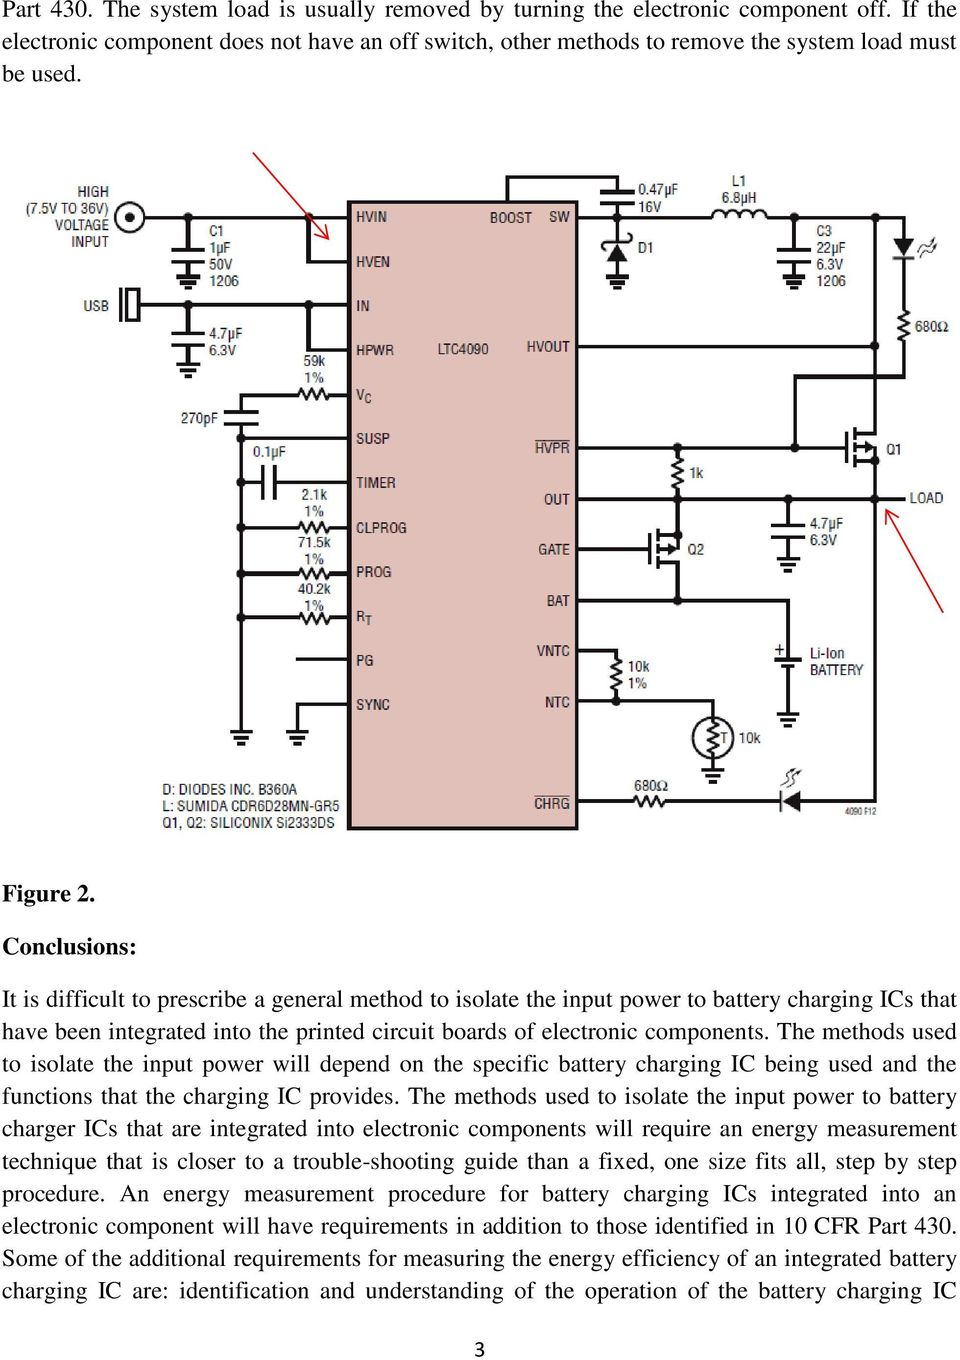 Pn Bq2004 Battery Charger Schematic Experience Of Wiring Diagram Bq24105 Switch Mode Lead Acid Isolation Chargers Integrated Into Printed Circuit Boards Rh Docplayer Net